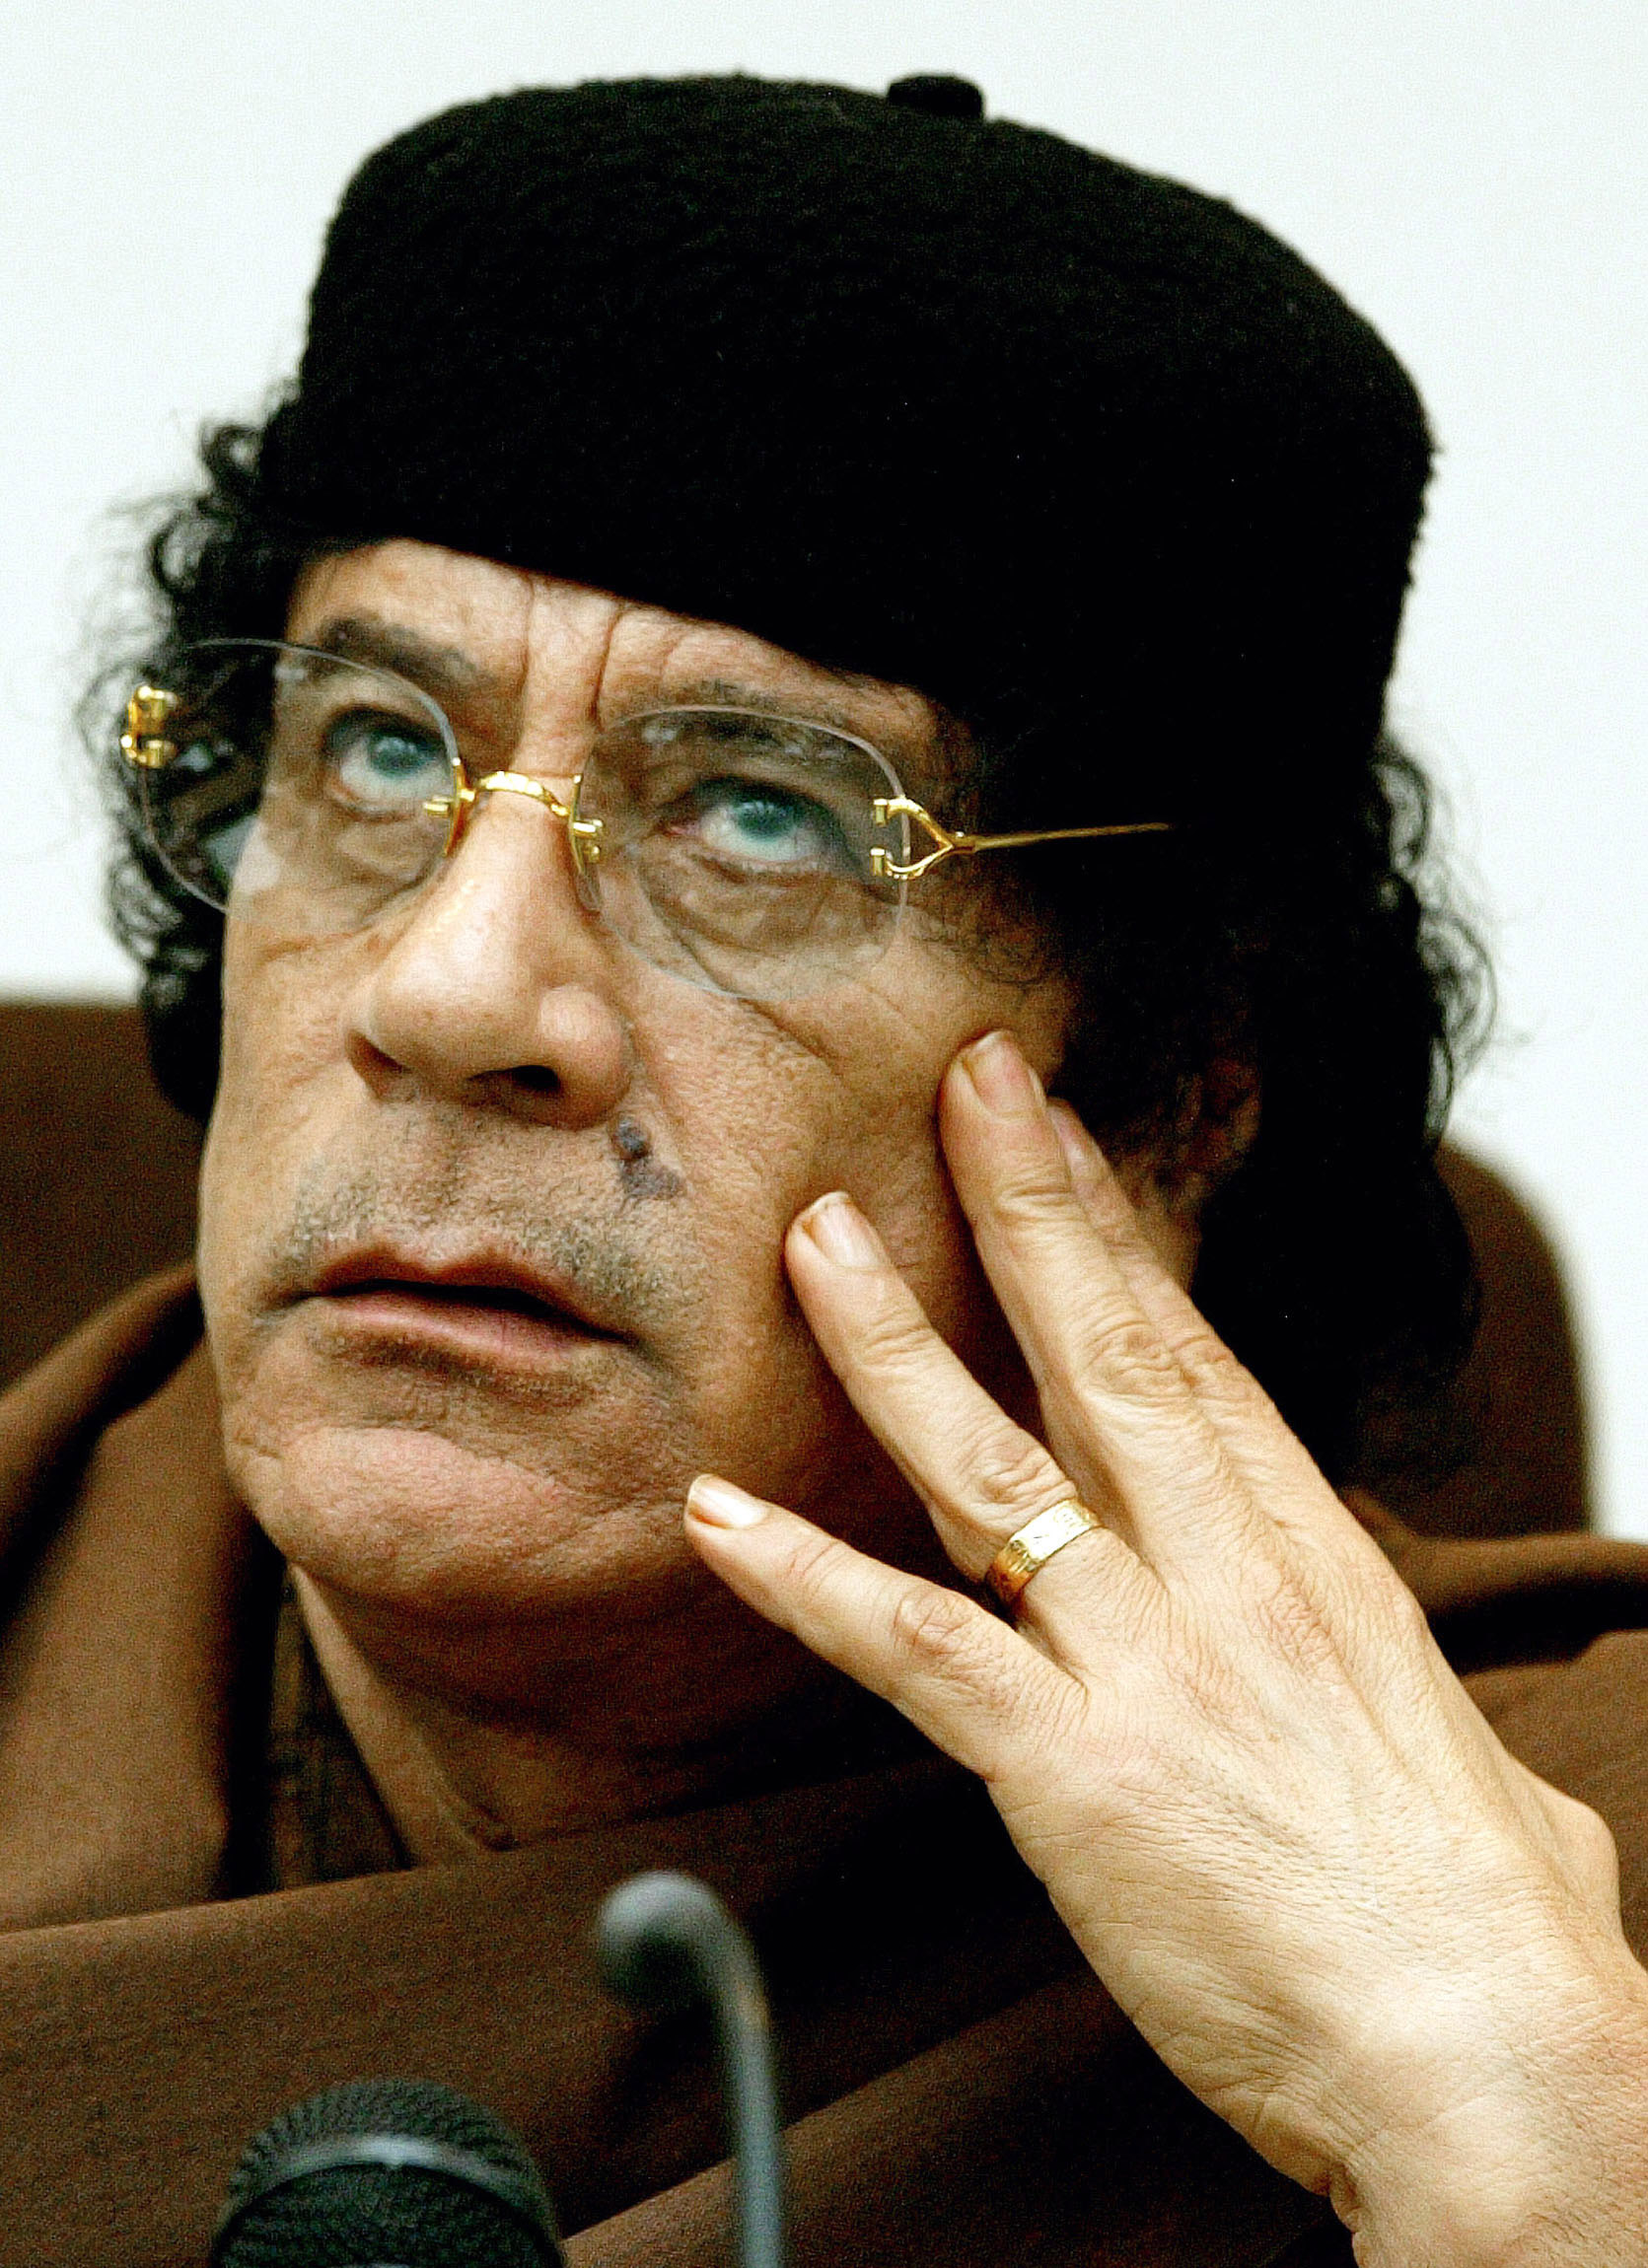 http://peterreynolds.files.wordpress.com/2011/03/gaddafi-2-0222.jpg